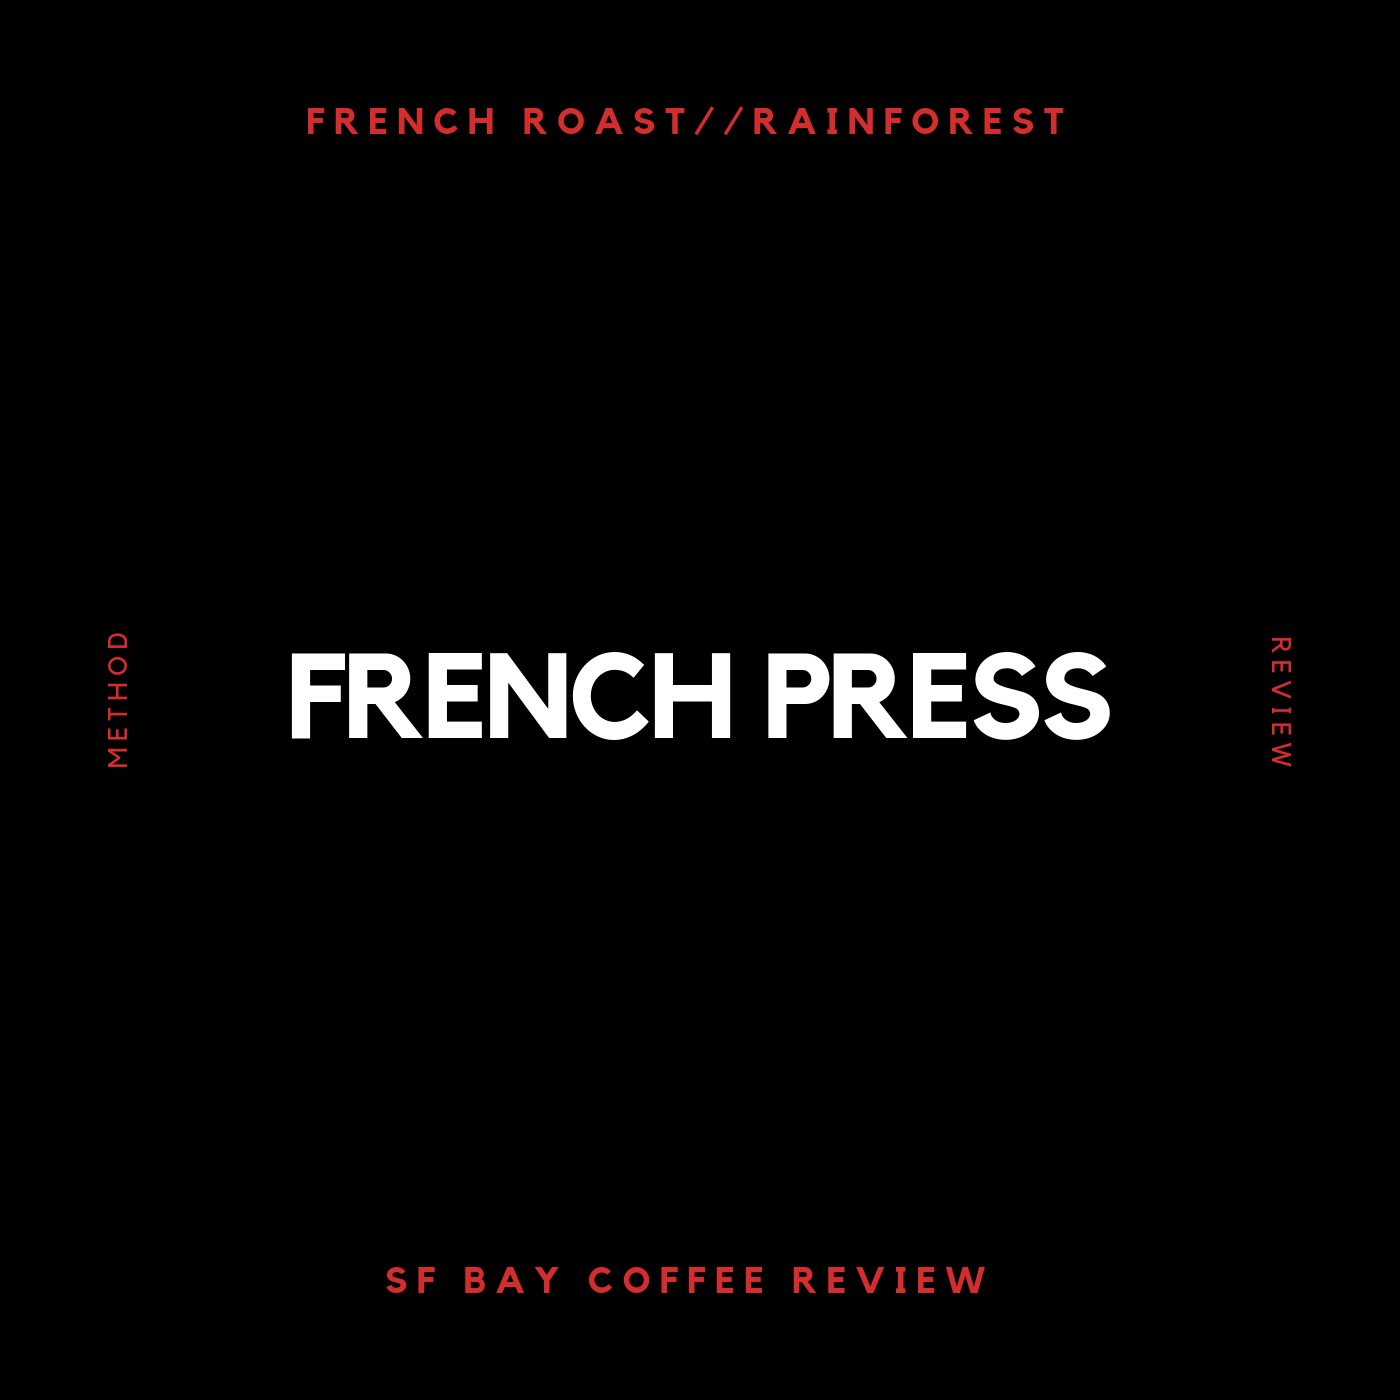 french press Review.png